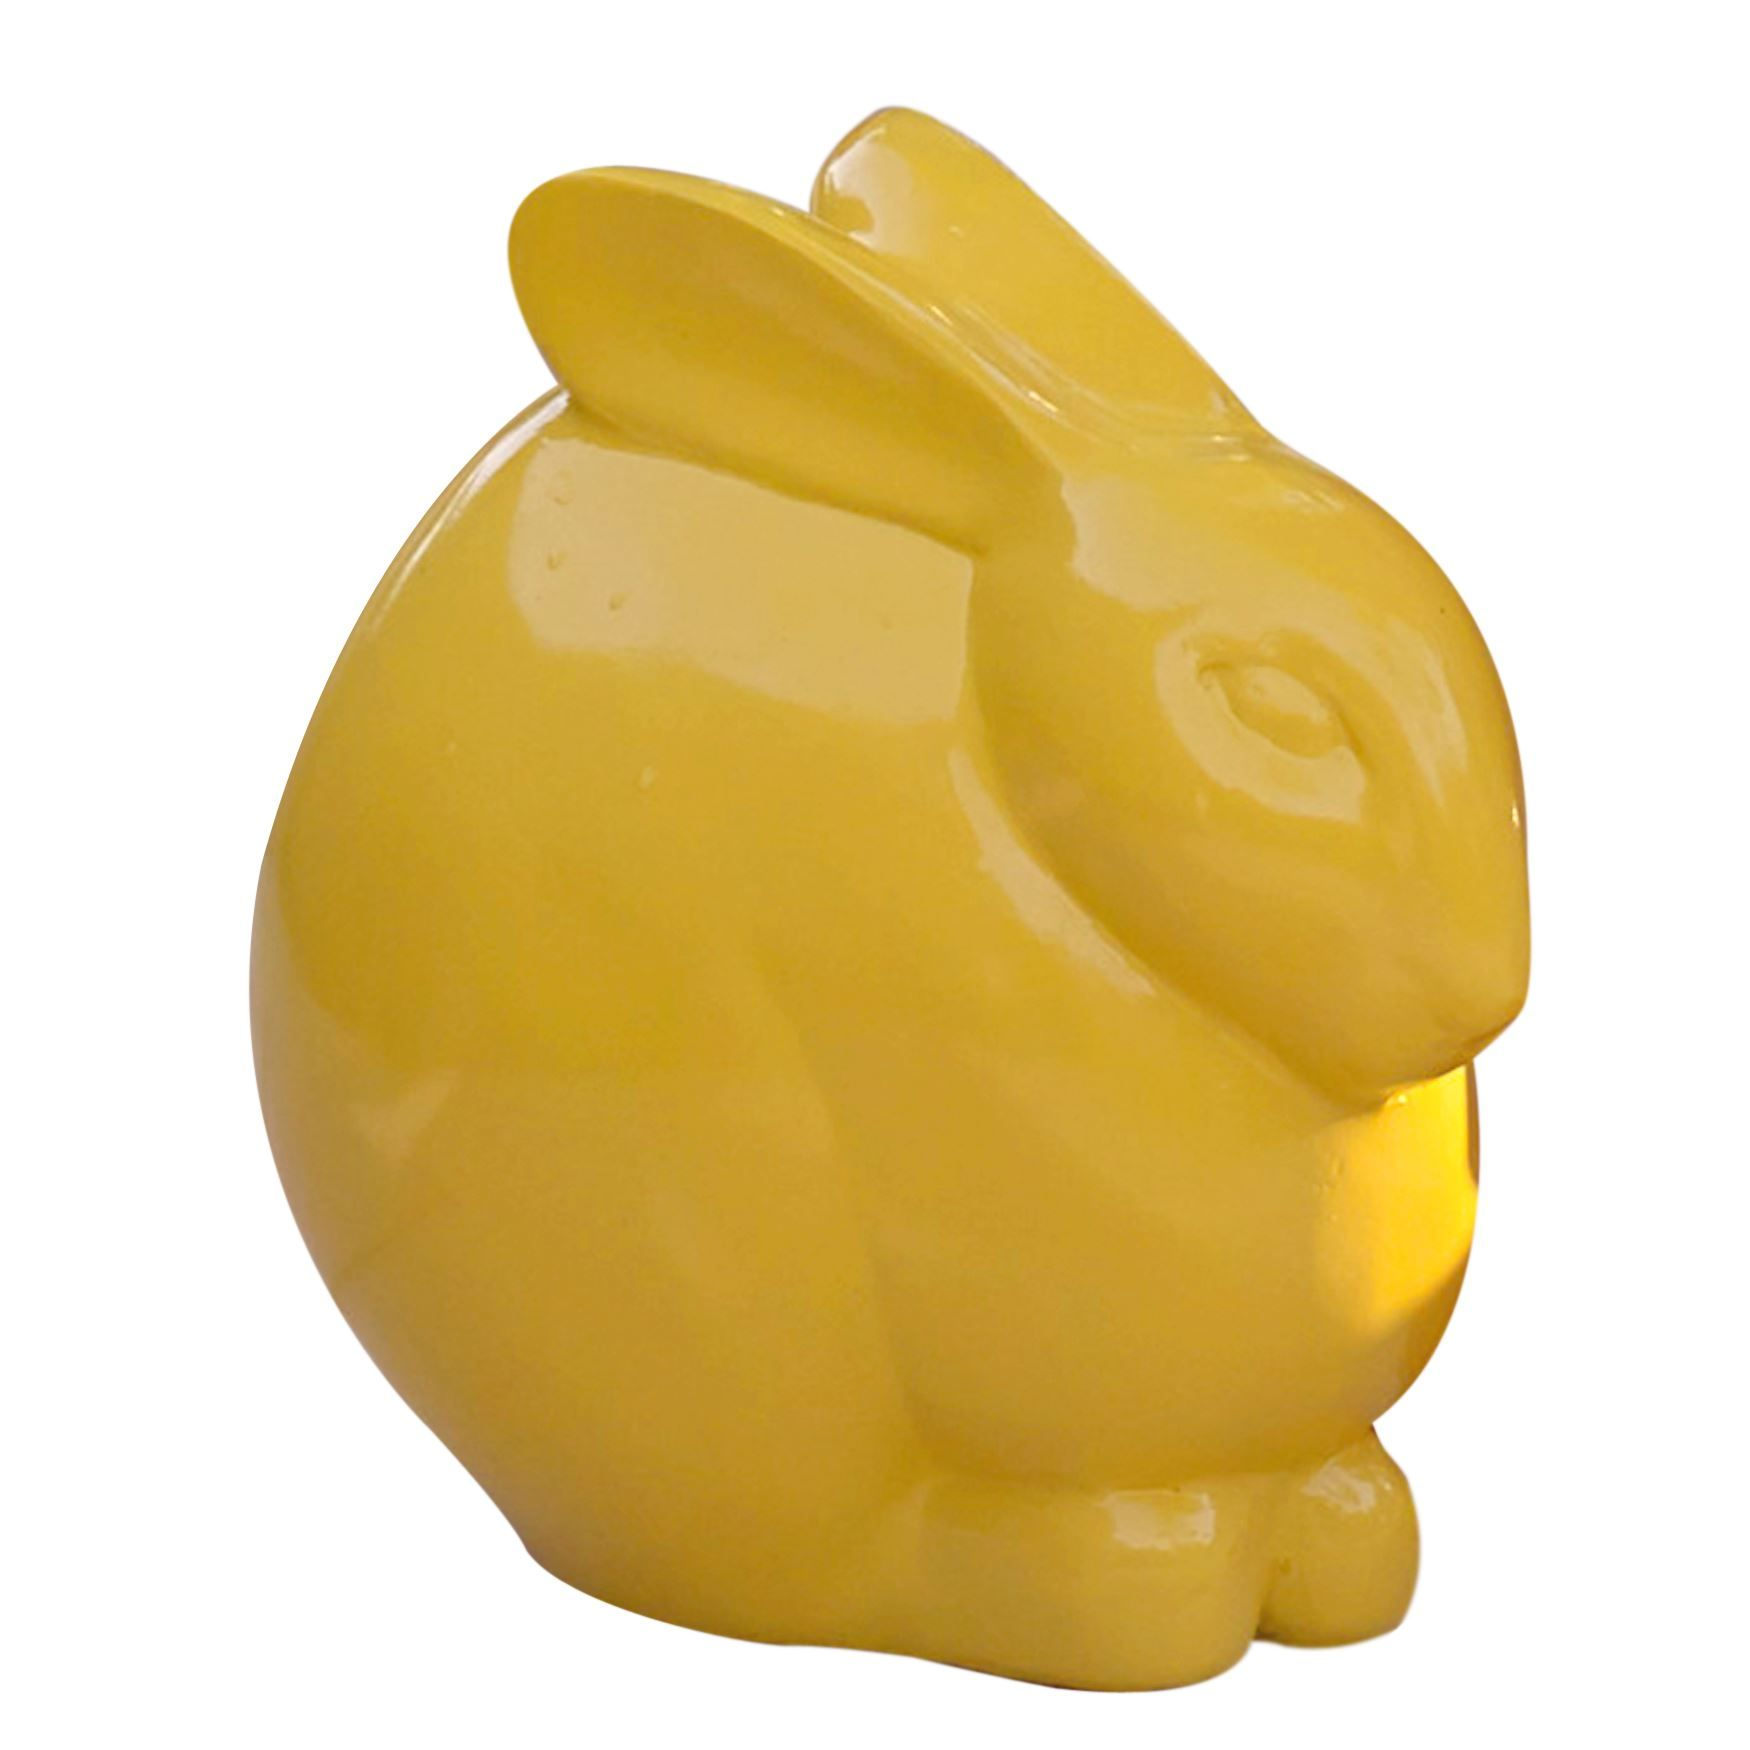 "Bring  your garden to life! Adorable Barley the Garden Bunny comes in bright,  hand-painted yellow to add a sweet touch of color to your garden décor.    dimensions: 9½""H x 8¼""W x 8¼""L water-resistant design in vivid color hand painted; no two are alike ettringite/acrylic/fiber wipe clean imported be sure to shop cushions, pillows & more for great ways to spruce up your outdoor area!    Why Buy? Our adorable garden animal accents add a charming touch to your  o..."